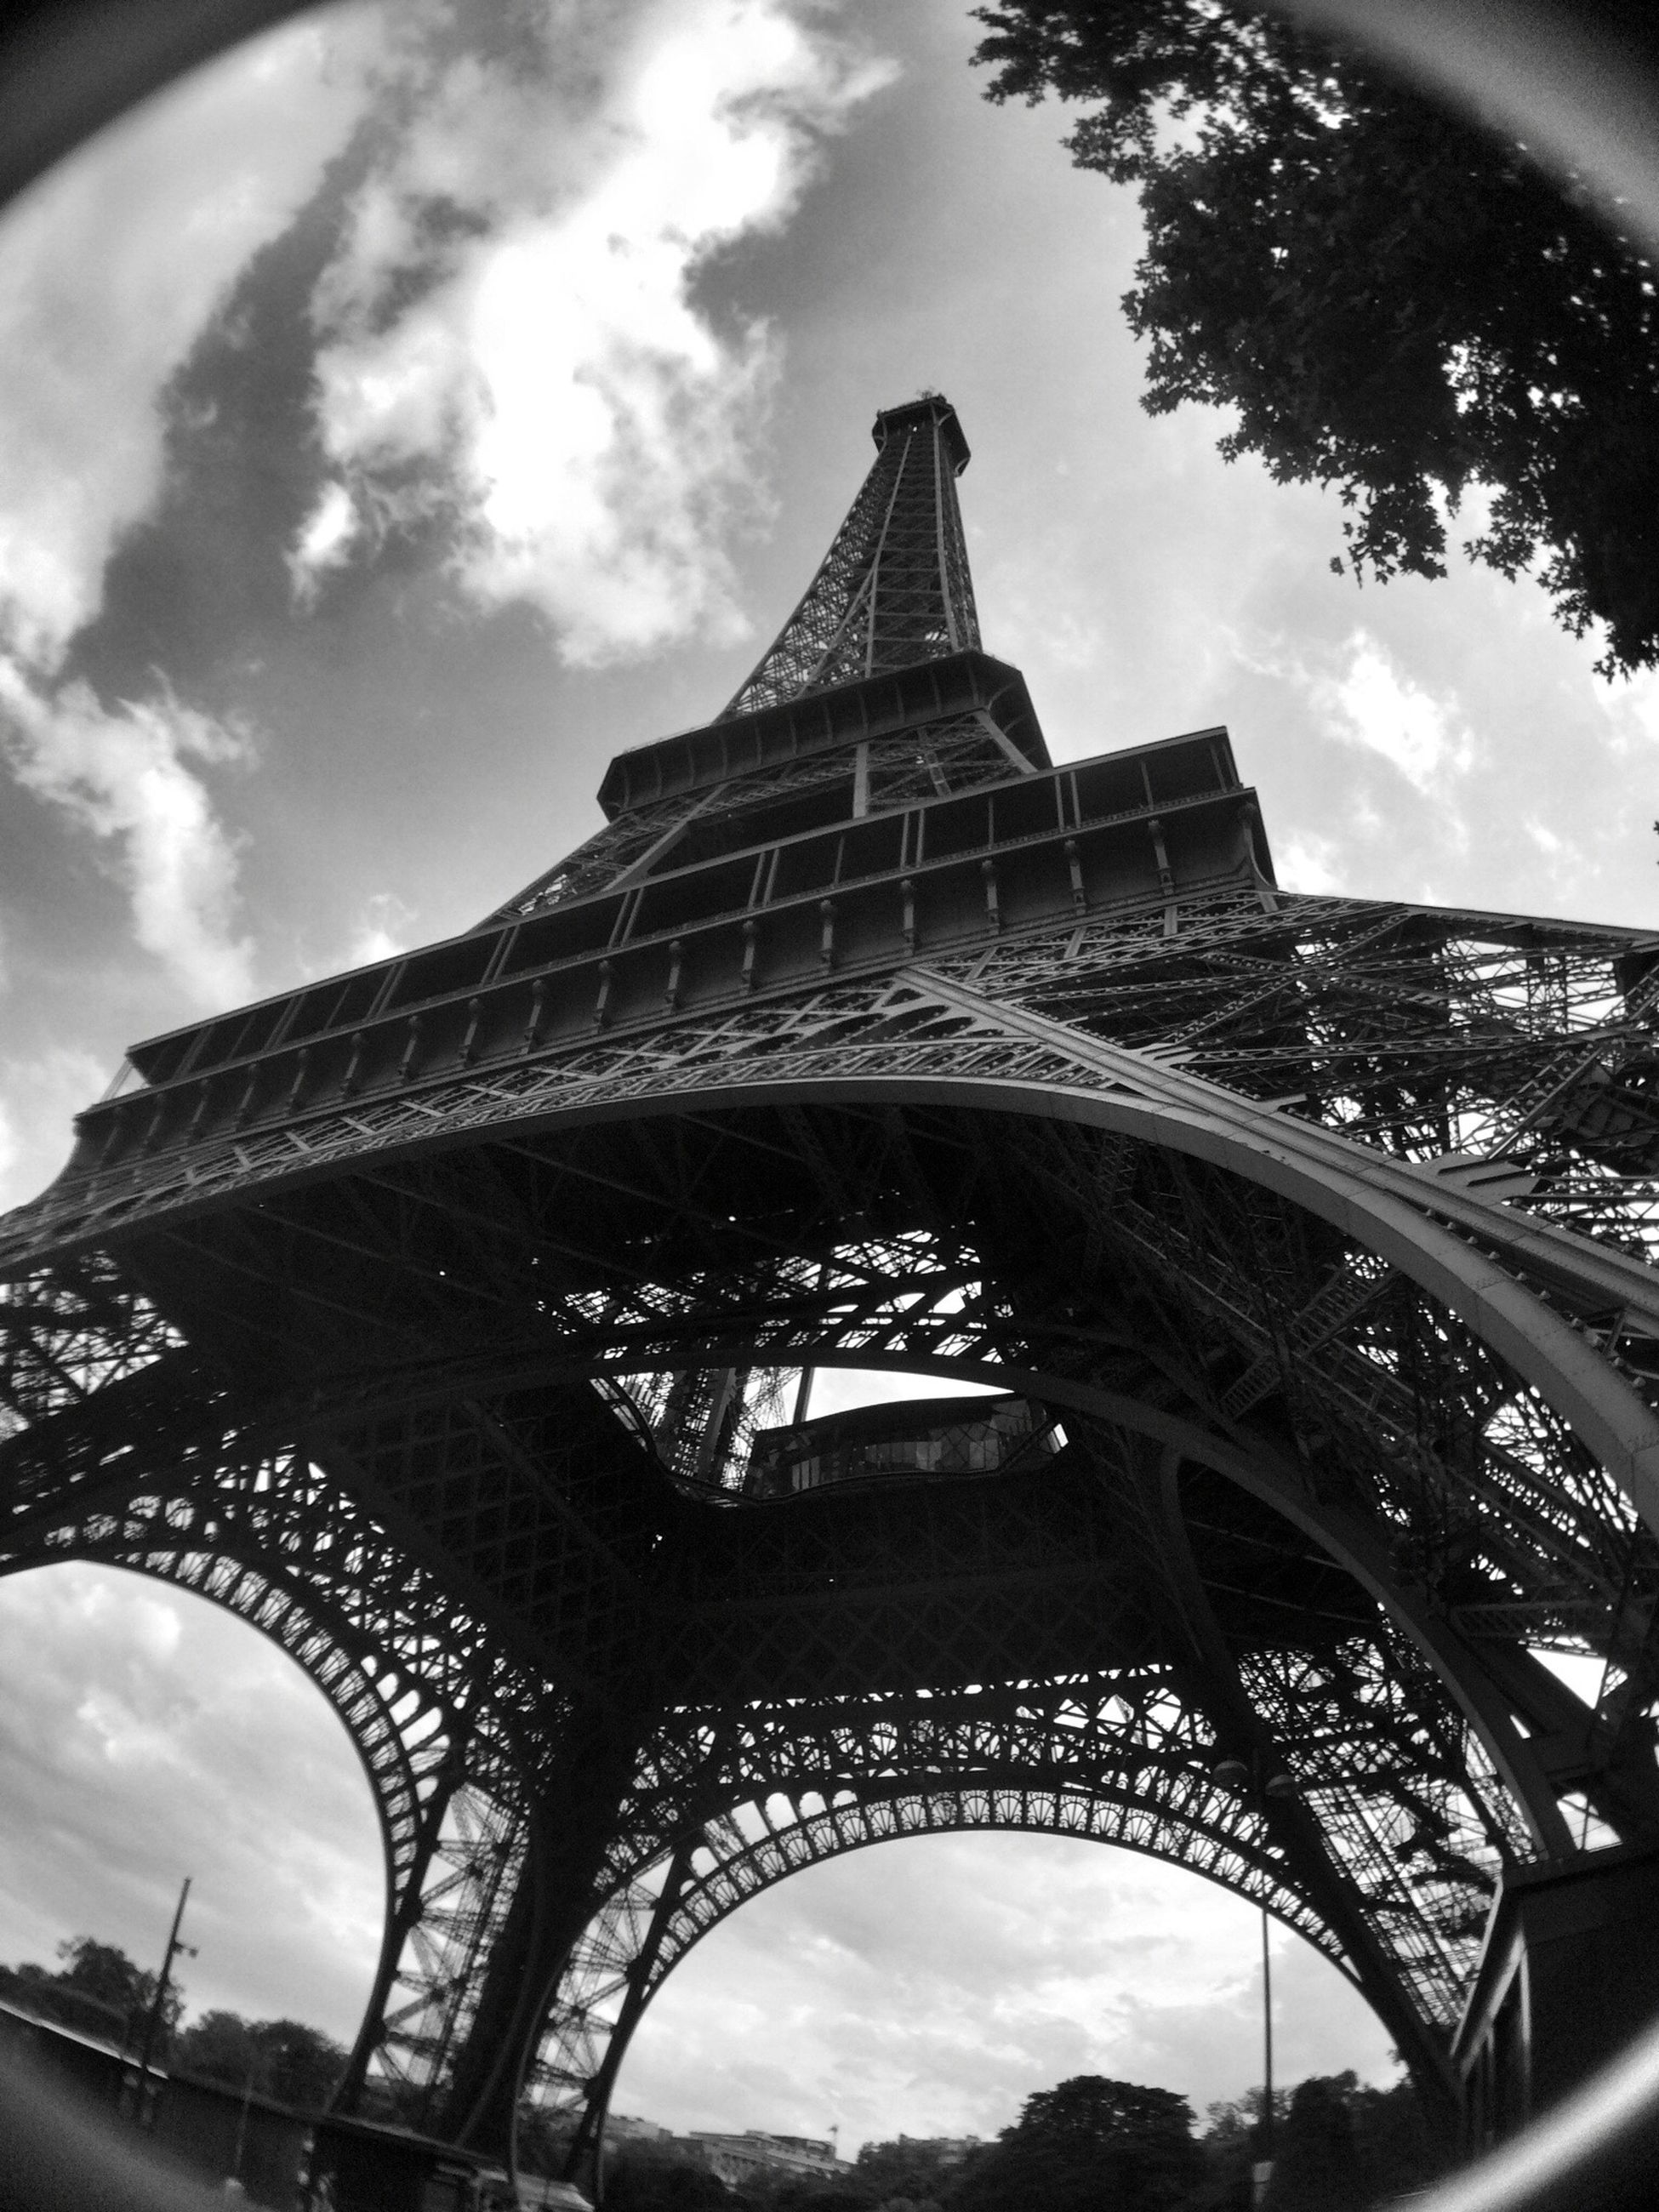 tourism, architecture, international landmark, travel destinations, low angle view, famous place, built structure, eiffel tower, capital cities, sky, culture, tower, travel, tall - high, arch, city, building exterior, tall, architectural feature, cloud - sky, history, iron - metal, outdoors, day, spire, vacations, 19th century style, majestic, city life, monument, cloudy